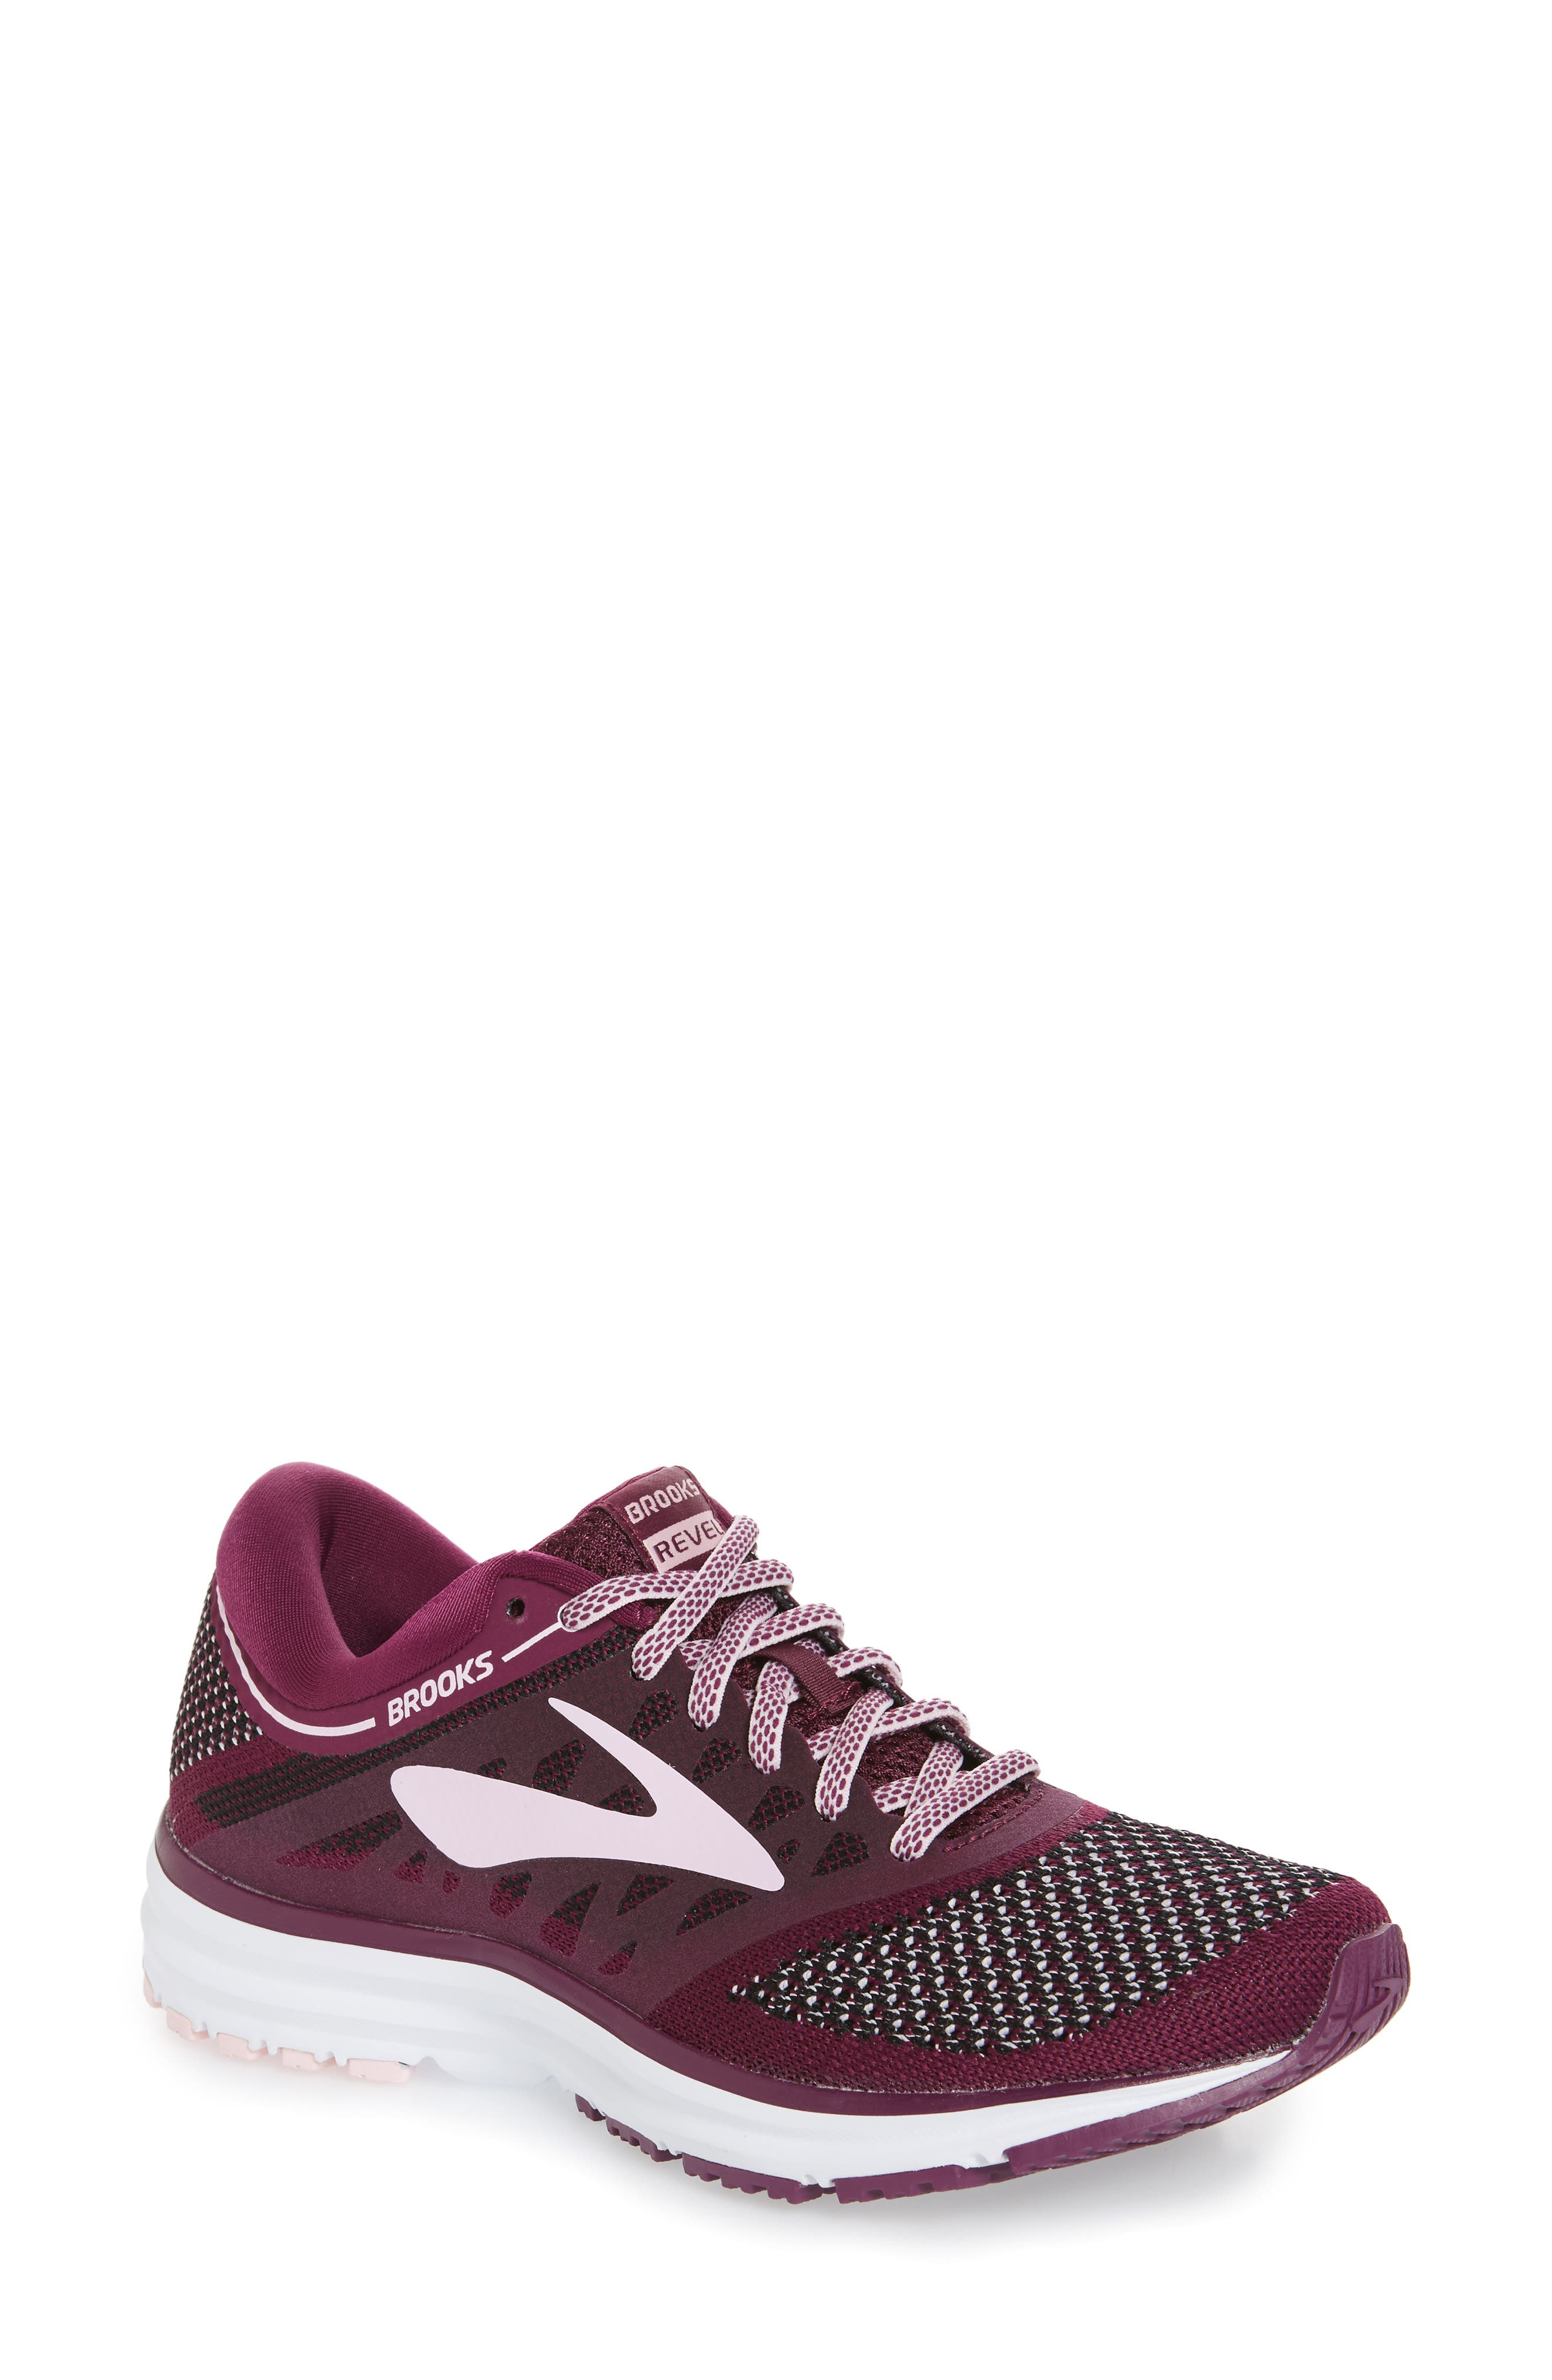 Revel Running Shoe,                             Main thumbnail 1, color,                             Plum/ Pink/ Black